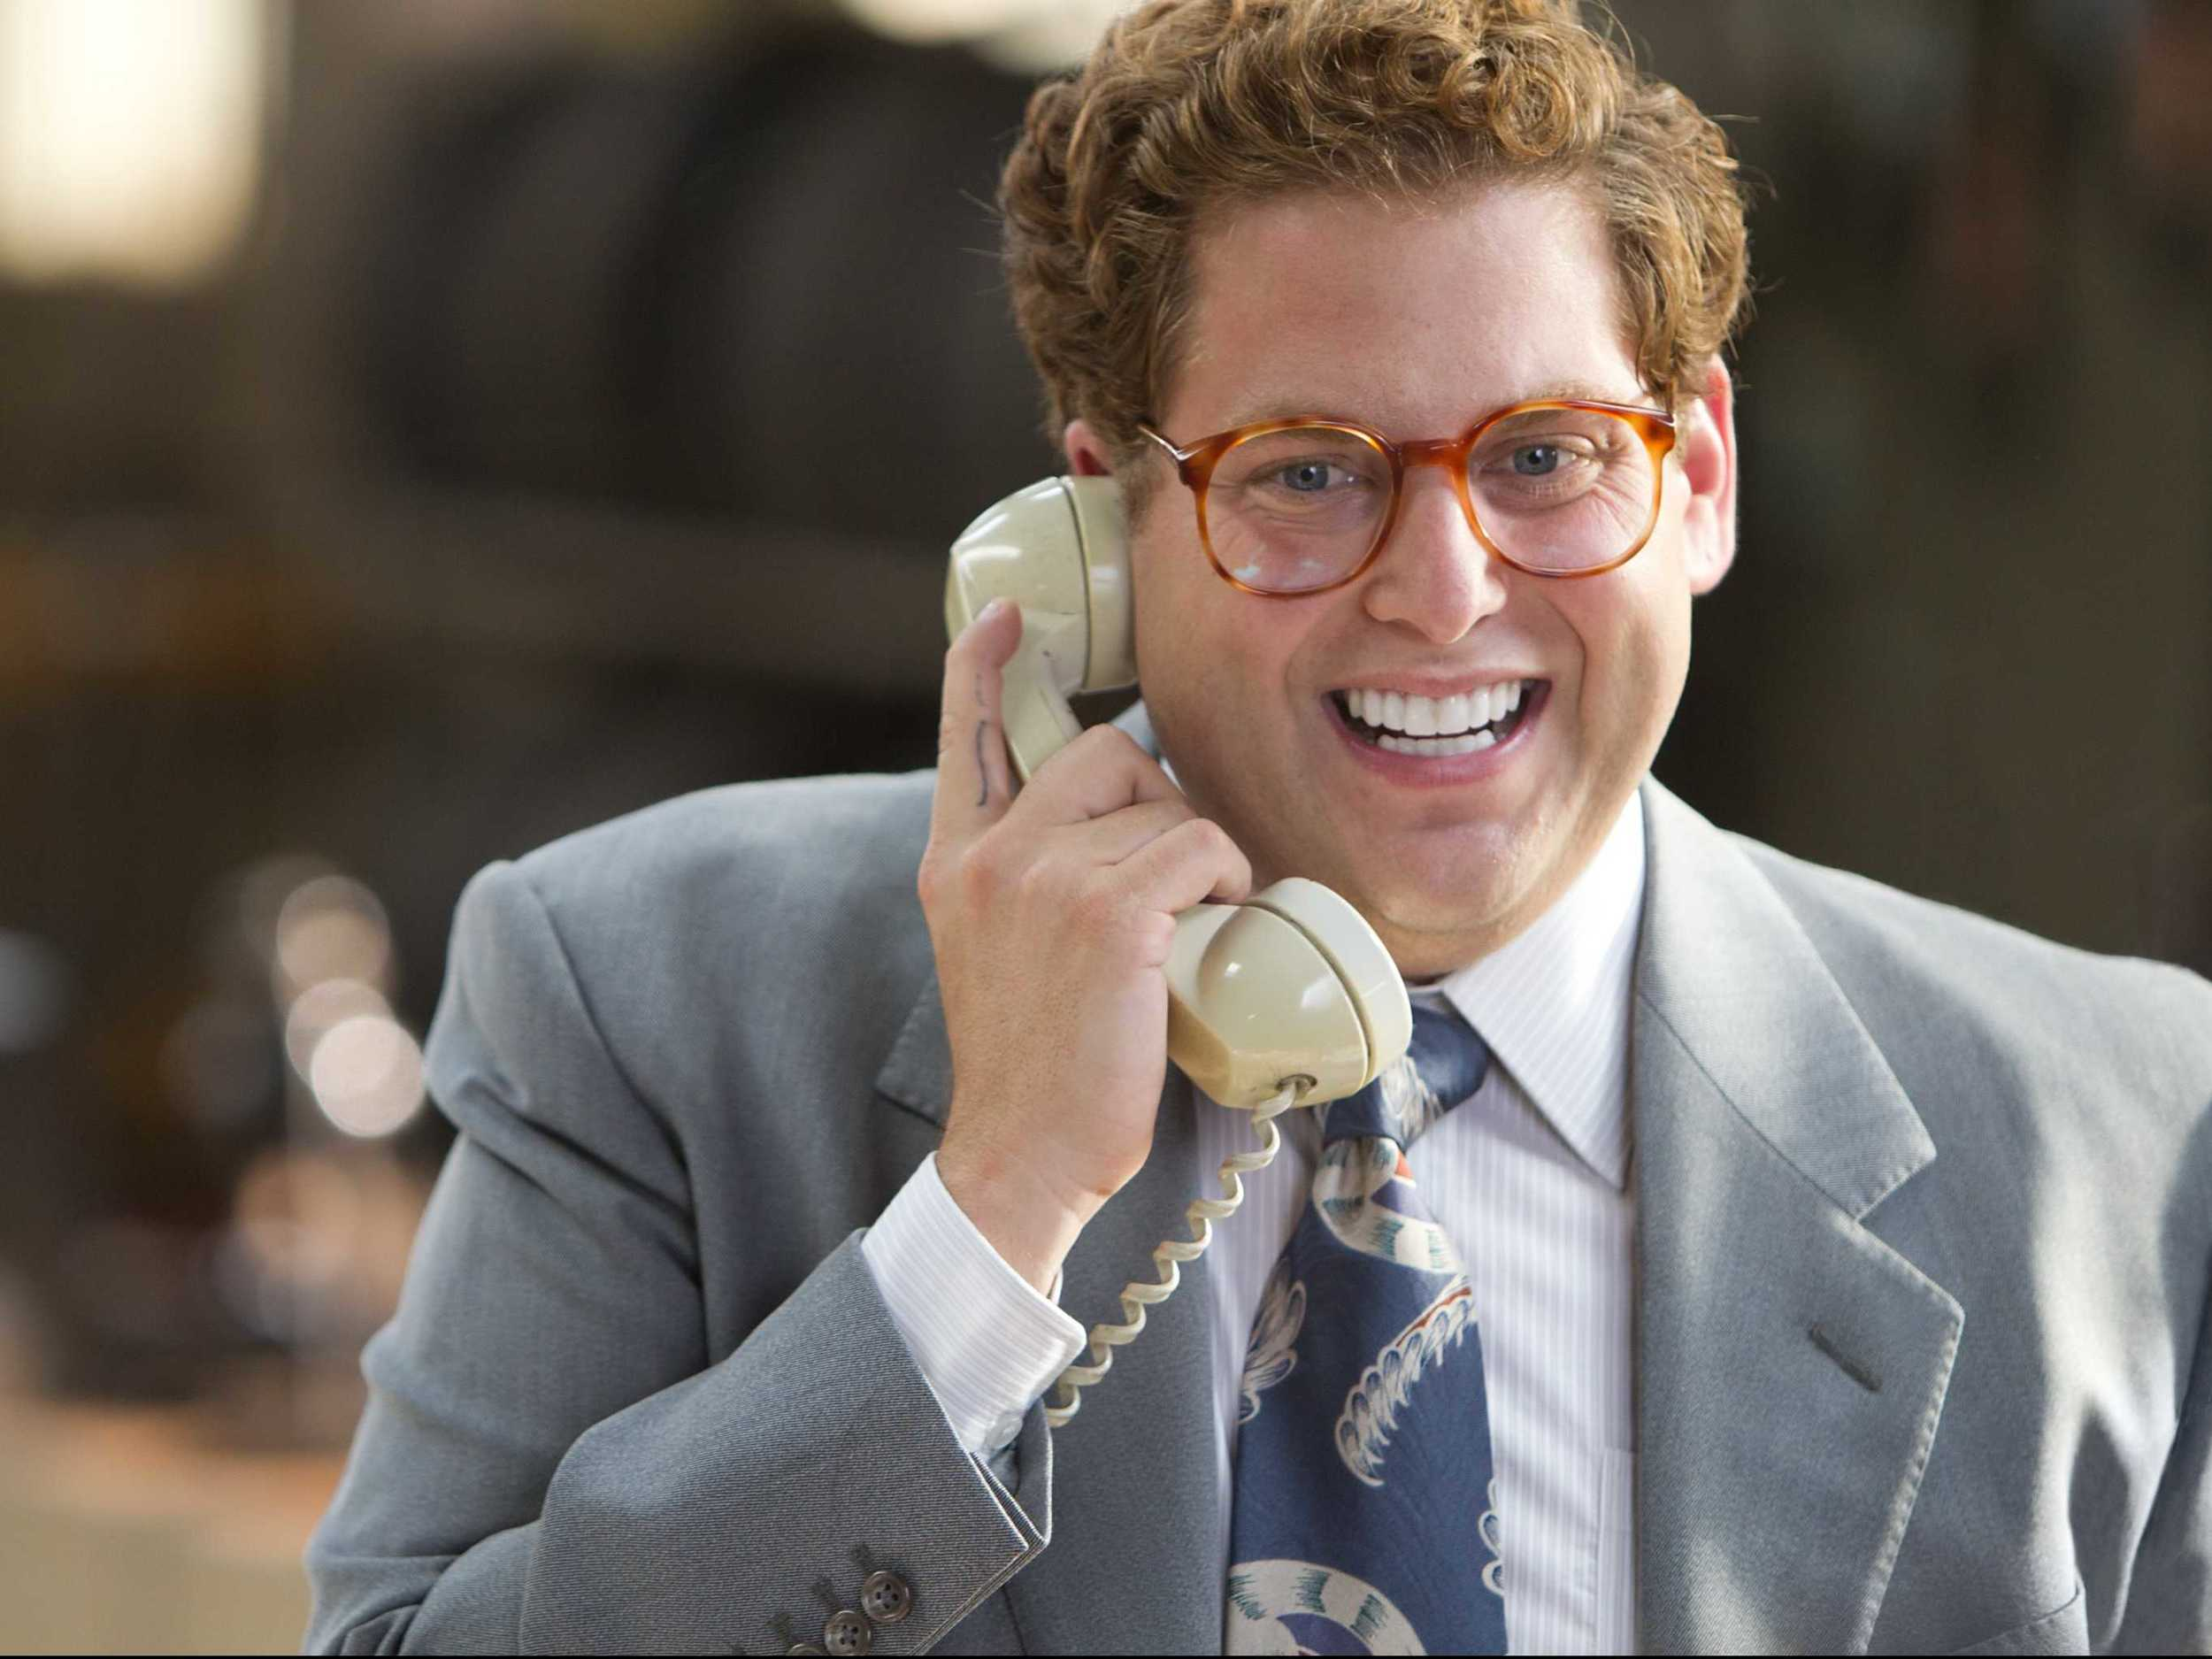 jonah-hill-says-wolf-of-wall-street-behavior-leads-to-a-very-bad-ending.jpg